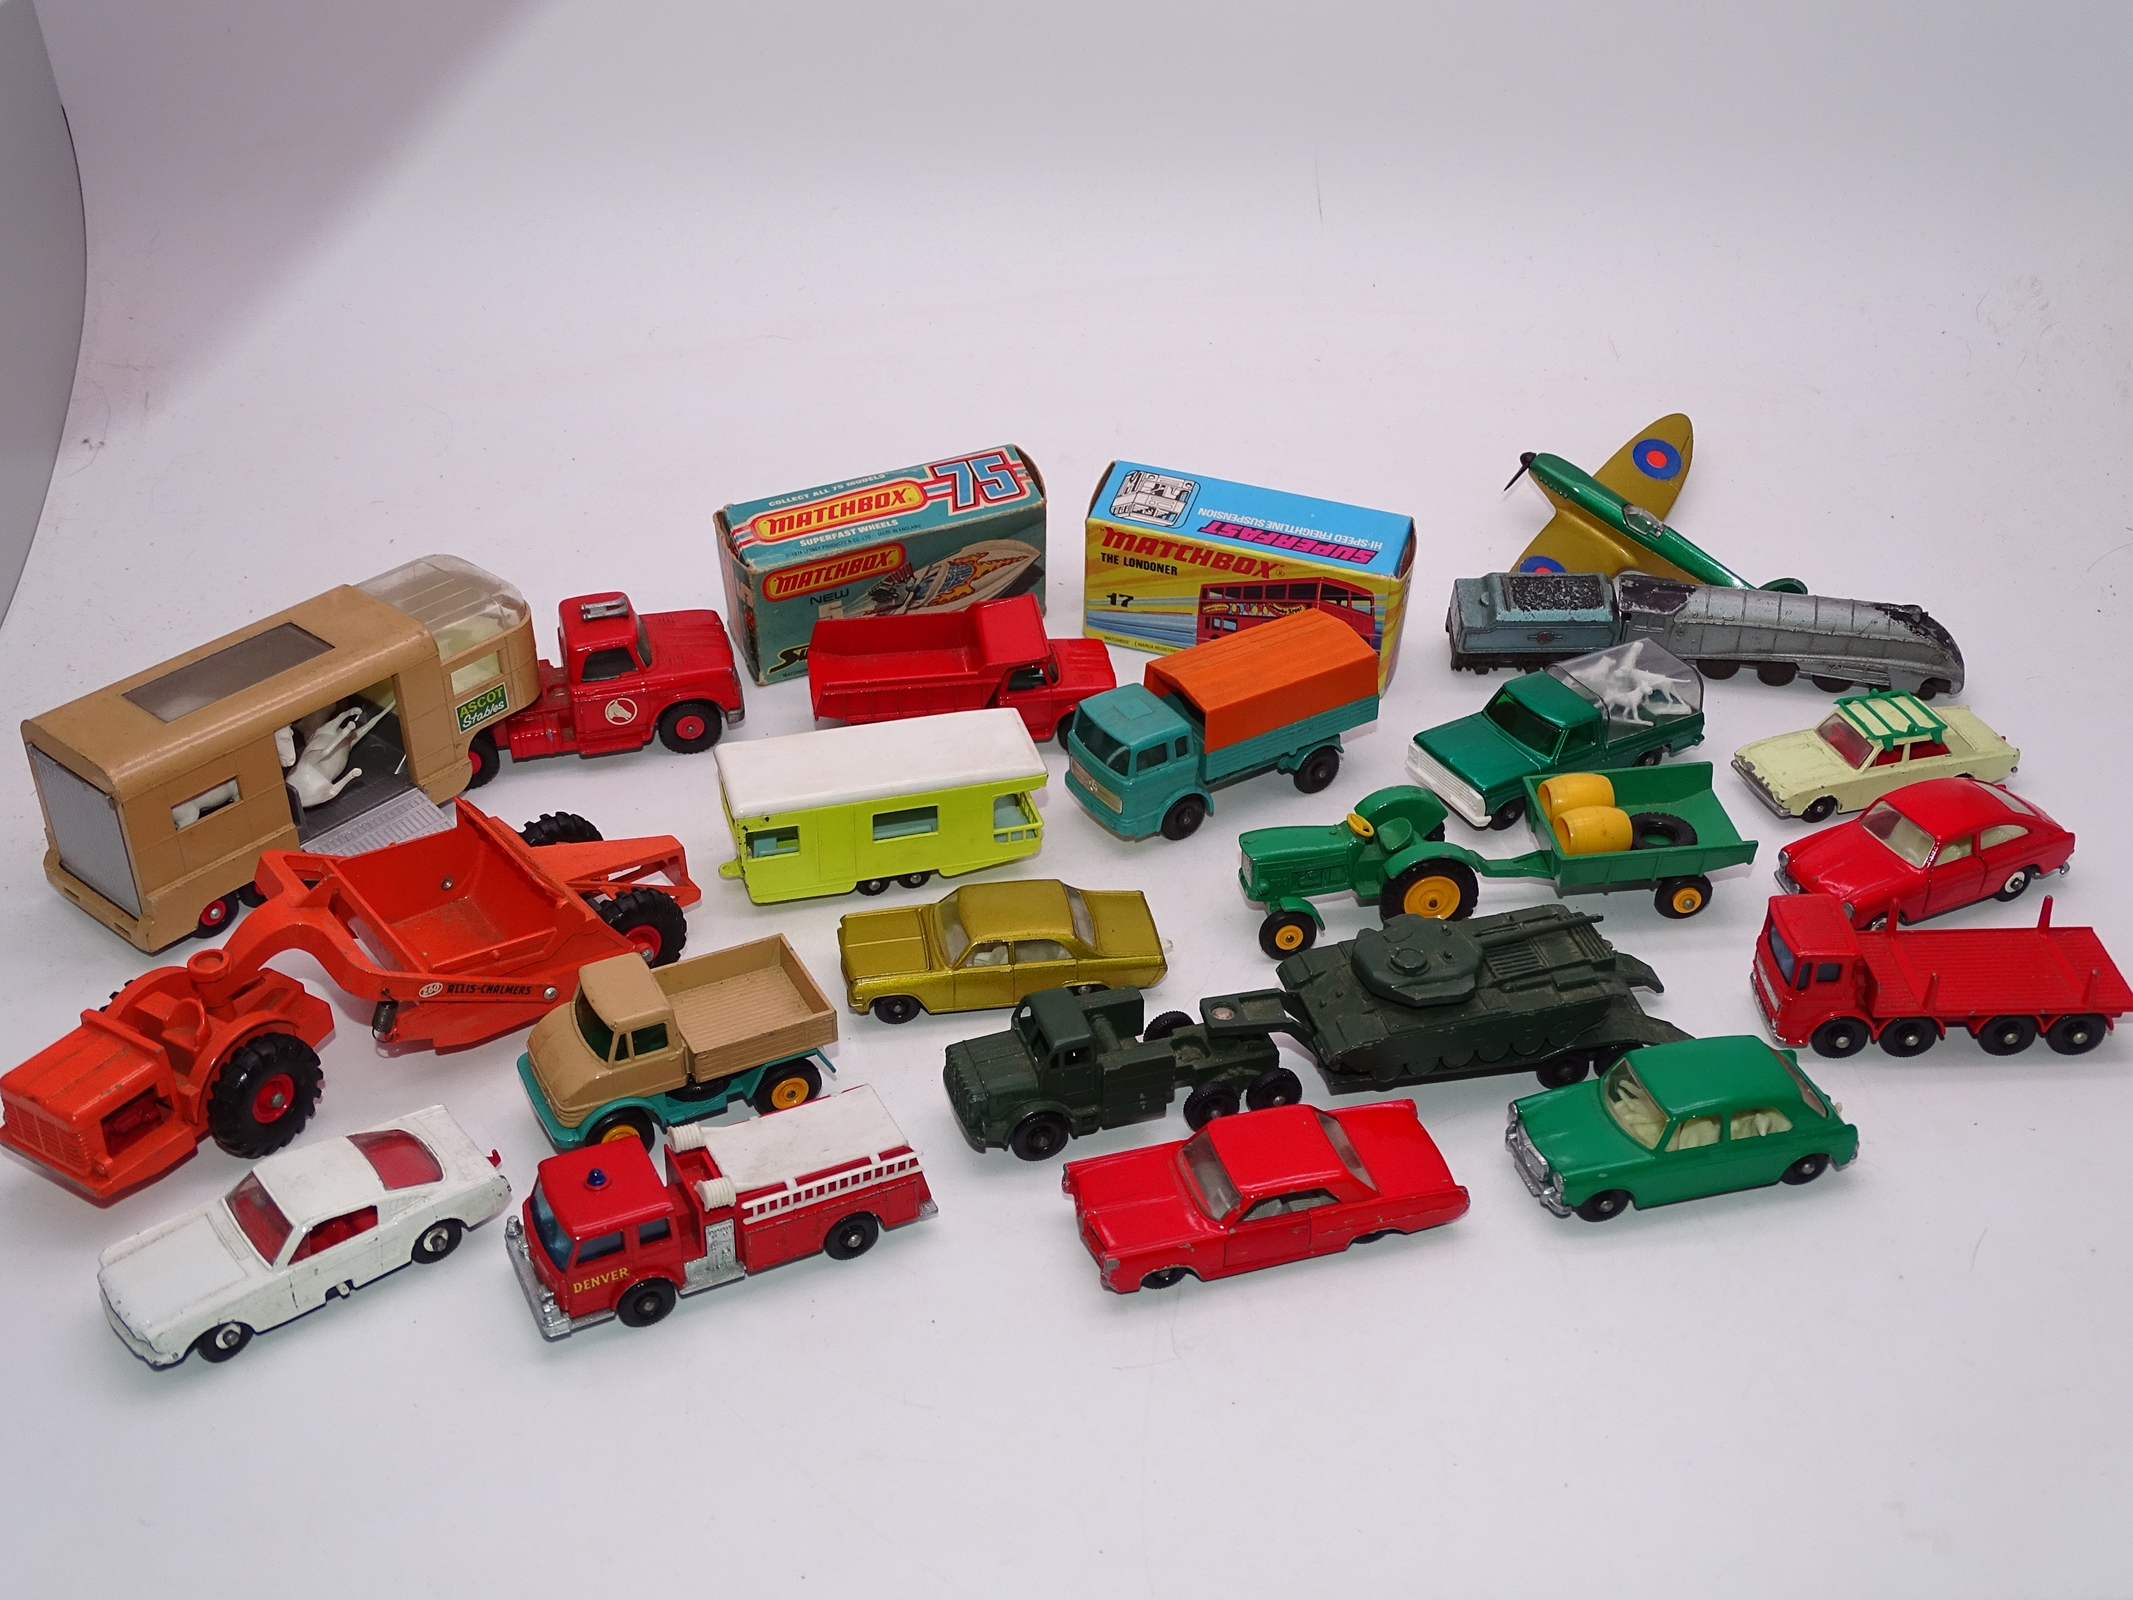 Lot 8 - A group of mostly unboxed playworn vintage Matchbox cars, trucks, etc. F-G, unboxed (19), boxed. (